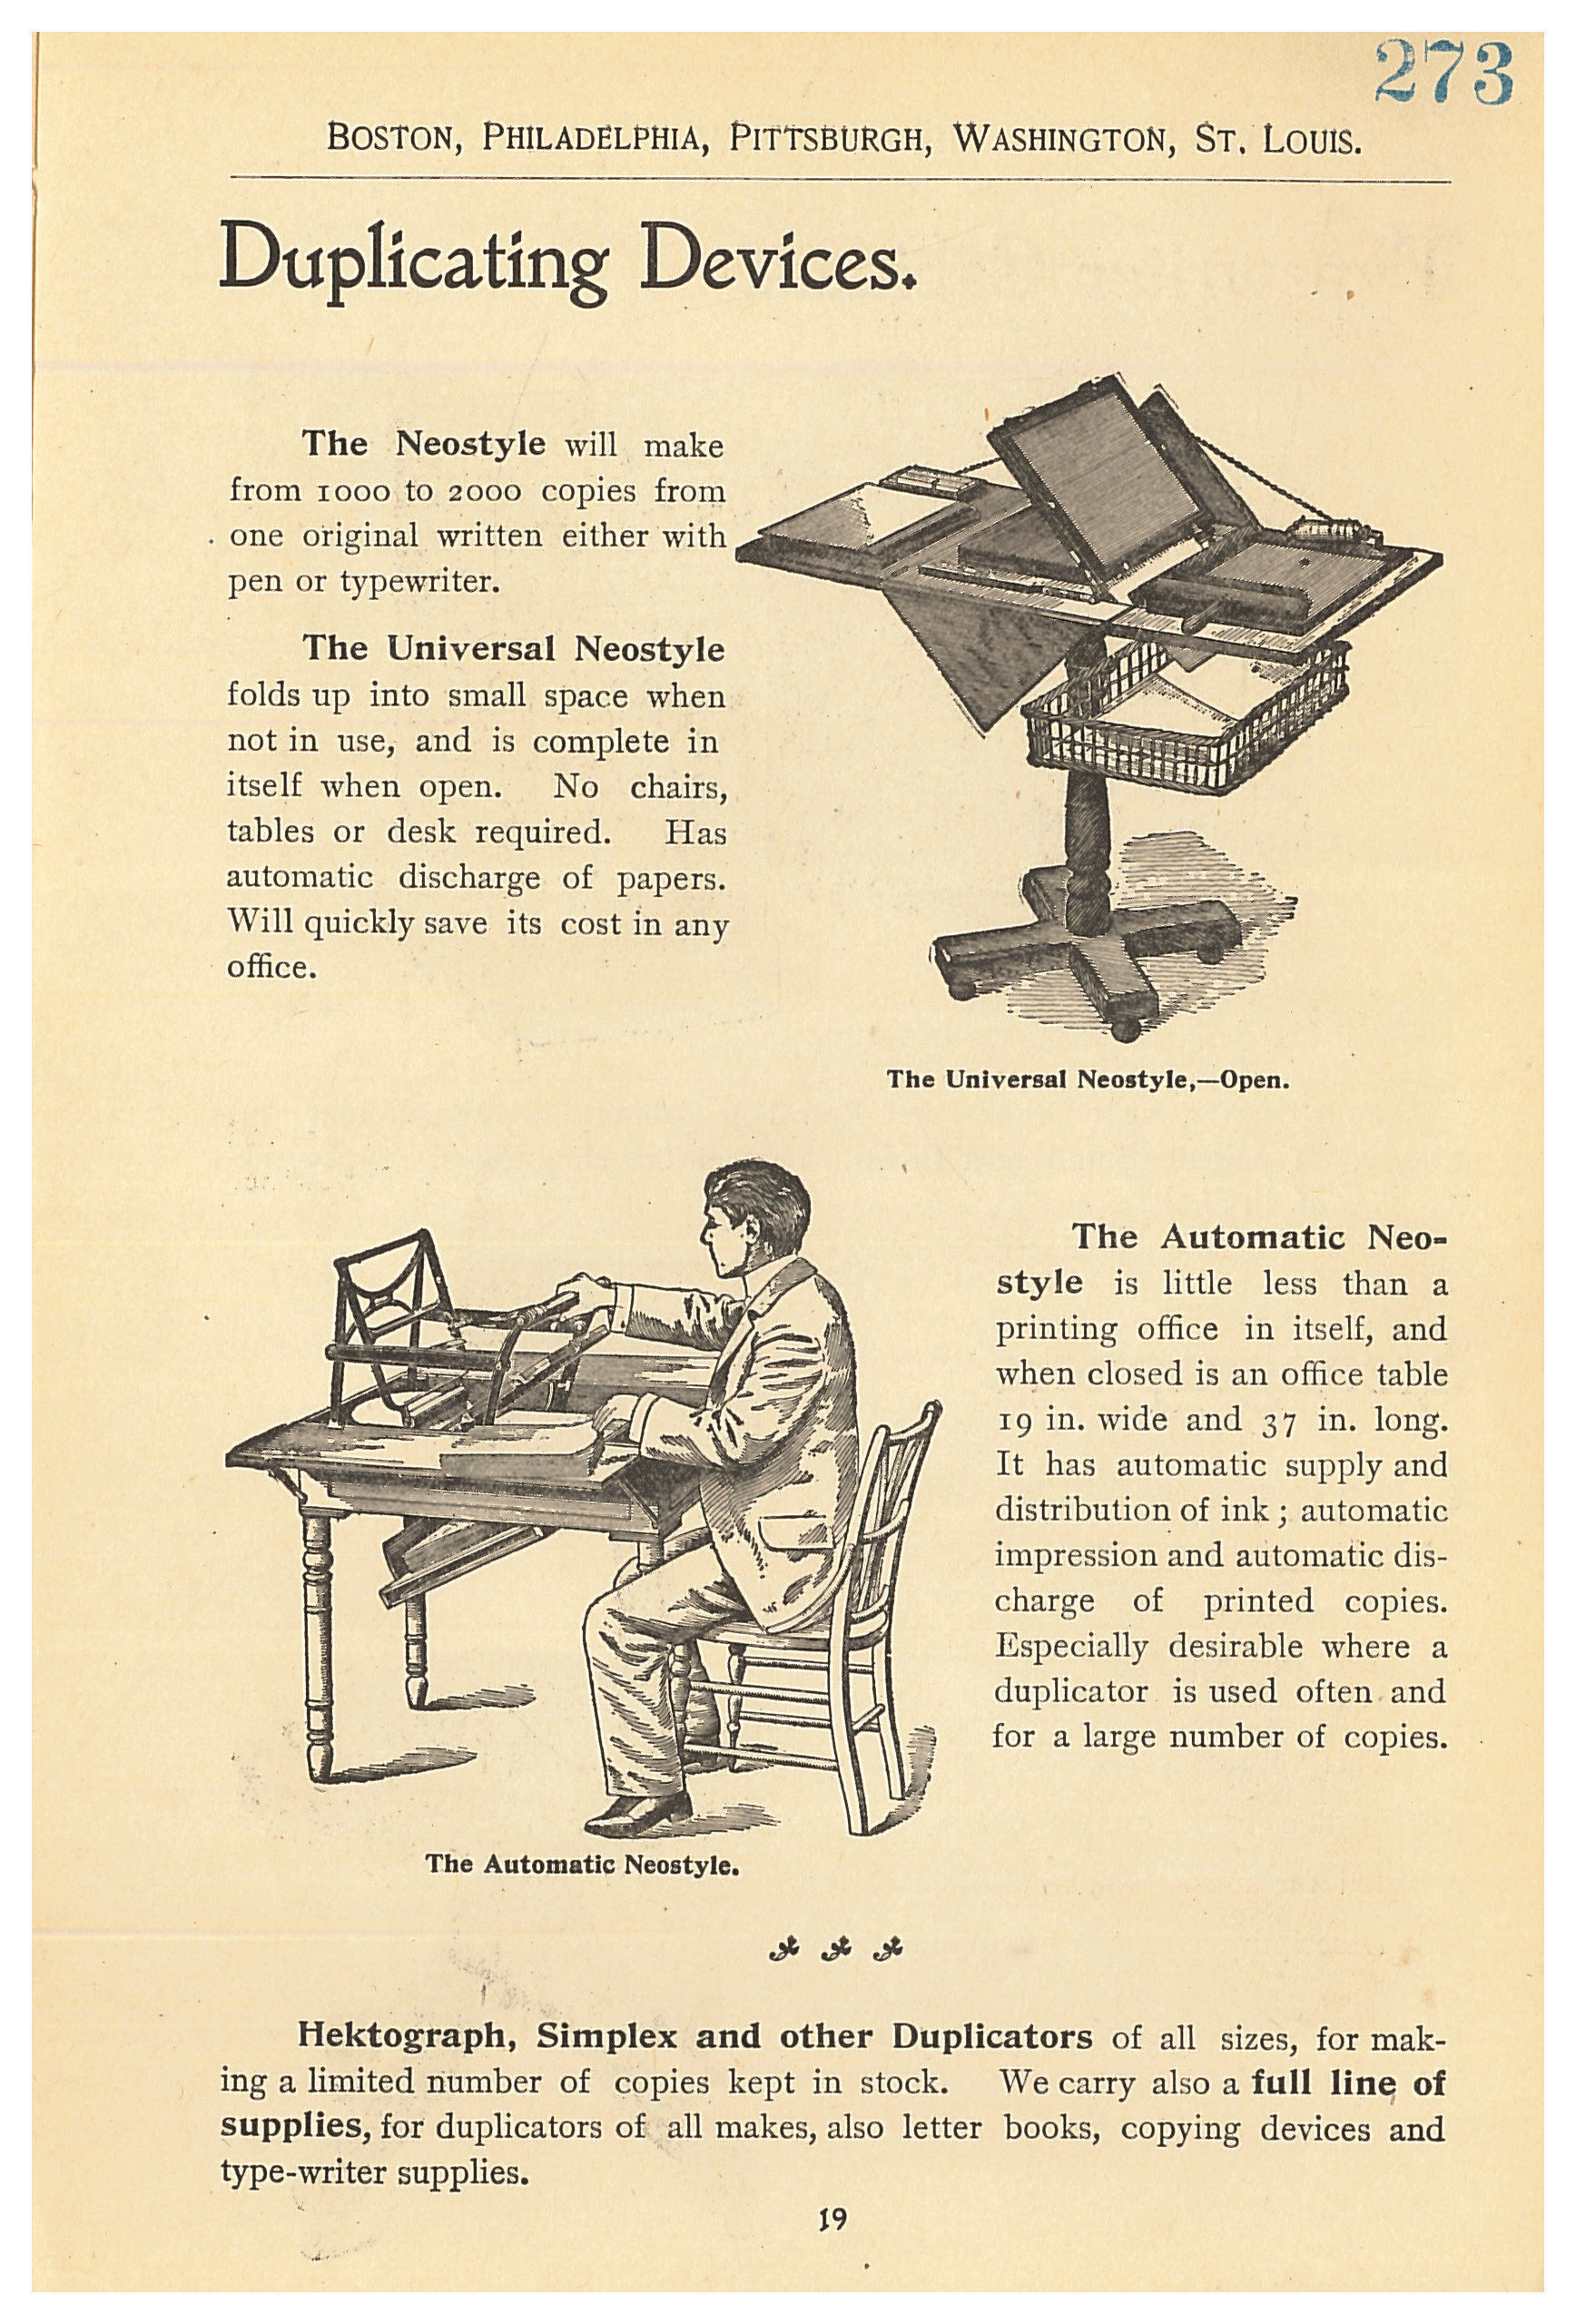 It s easy to find the office supplies copy paper furniture ink - Two Neostyle Duplicating Devices With A Man Sitting At The Automatic Neostyle Duplicating Device